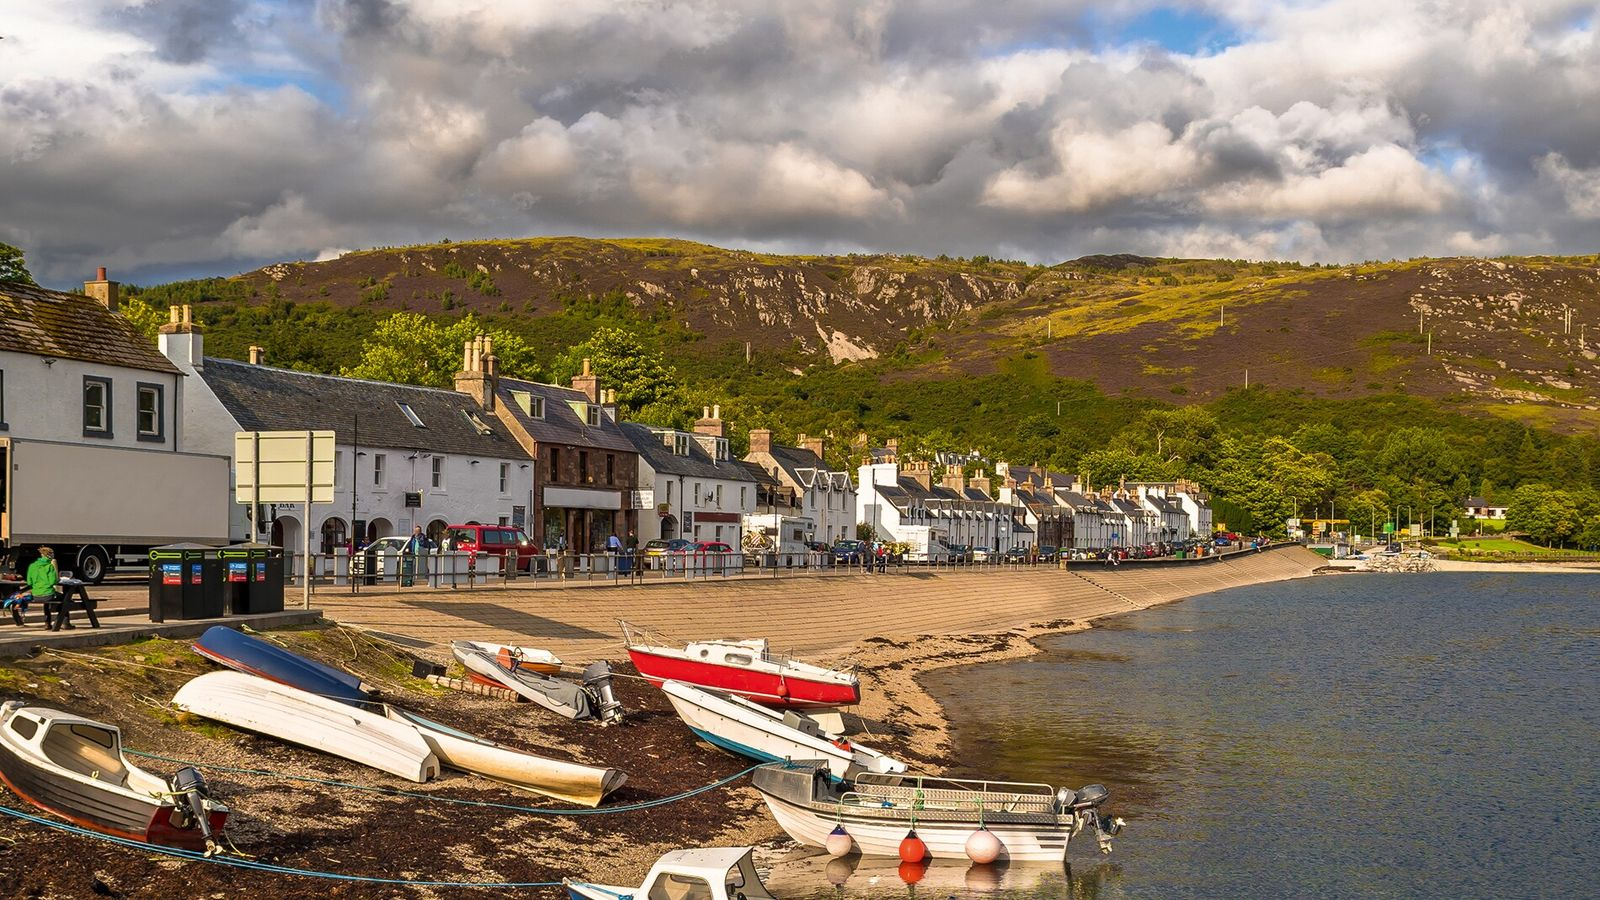 Boats on the shore ofUllapool,a villagein Ross and Cromarty, in the Scottish Highlands.